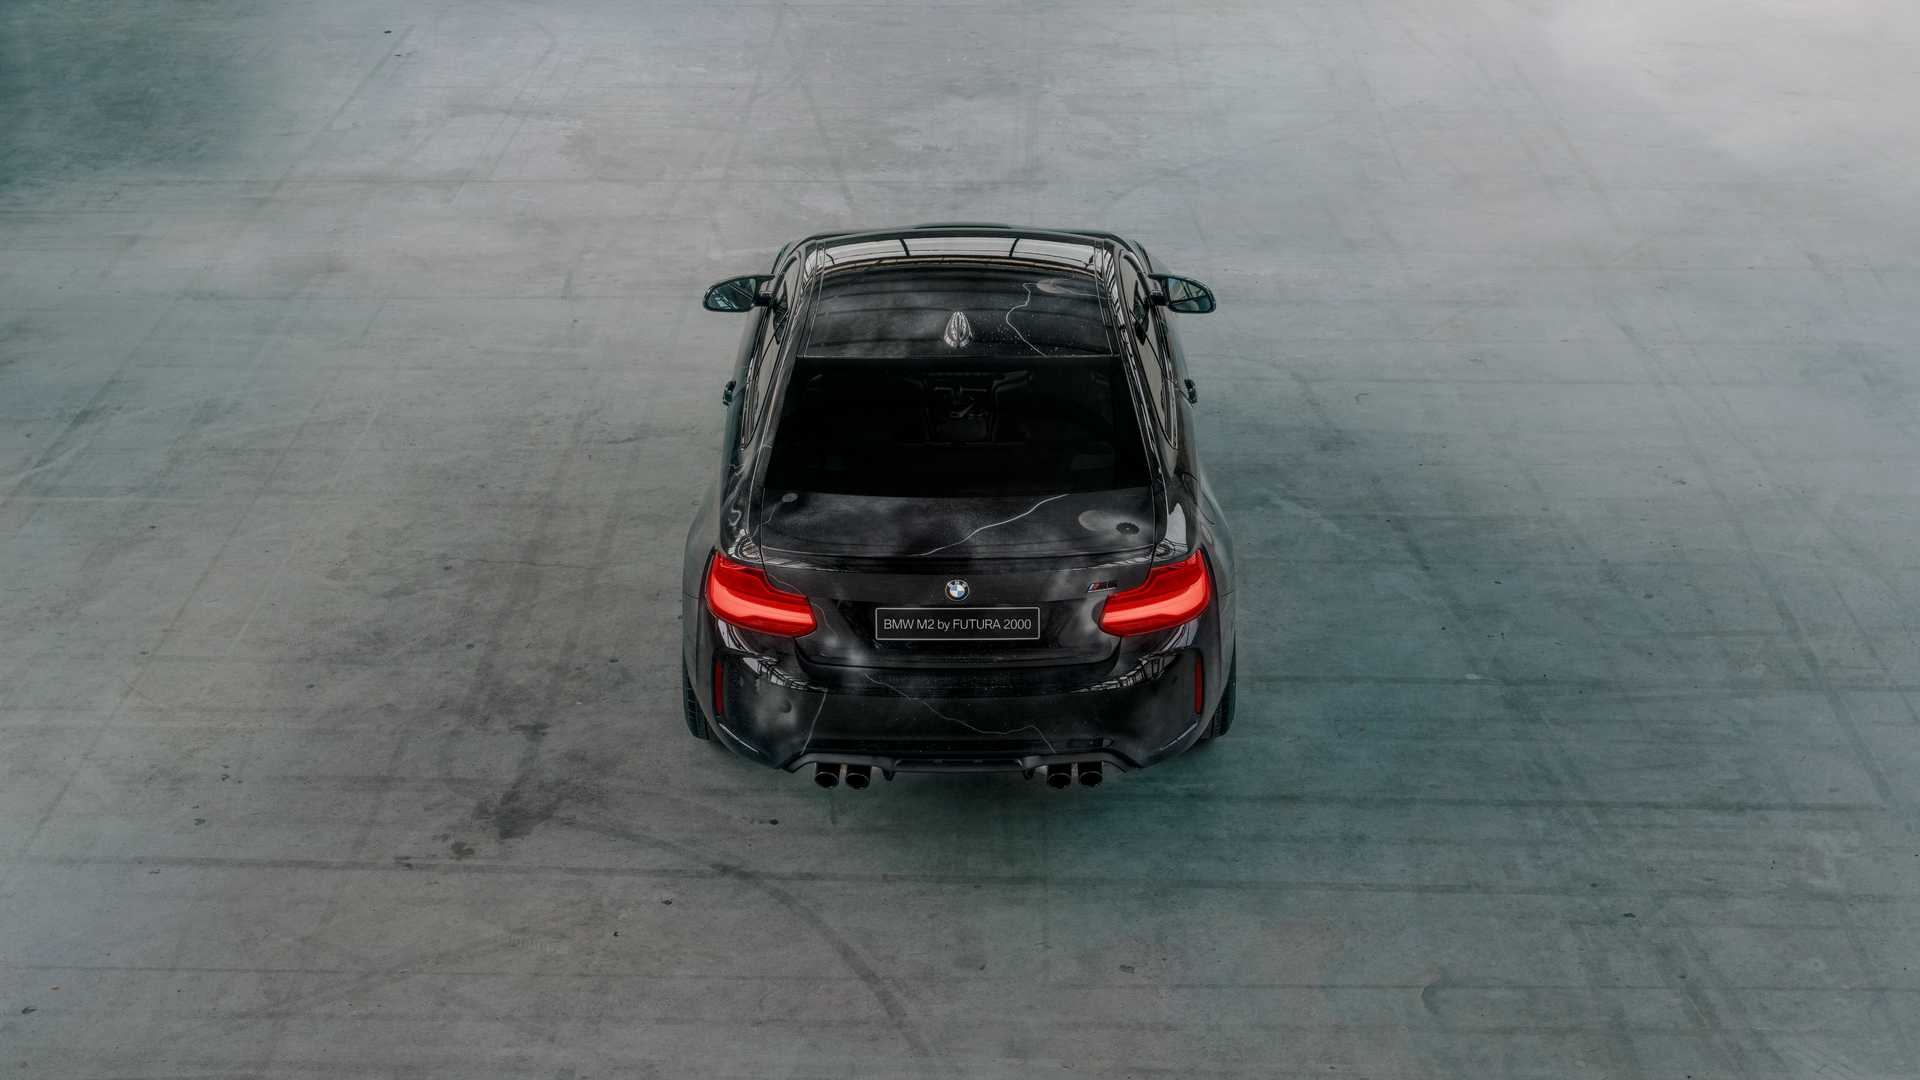 bmw-m2-competition-by-futura-2000-13